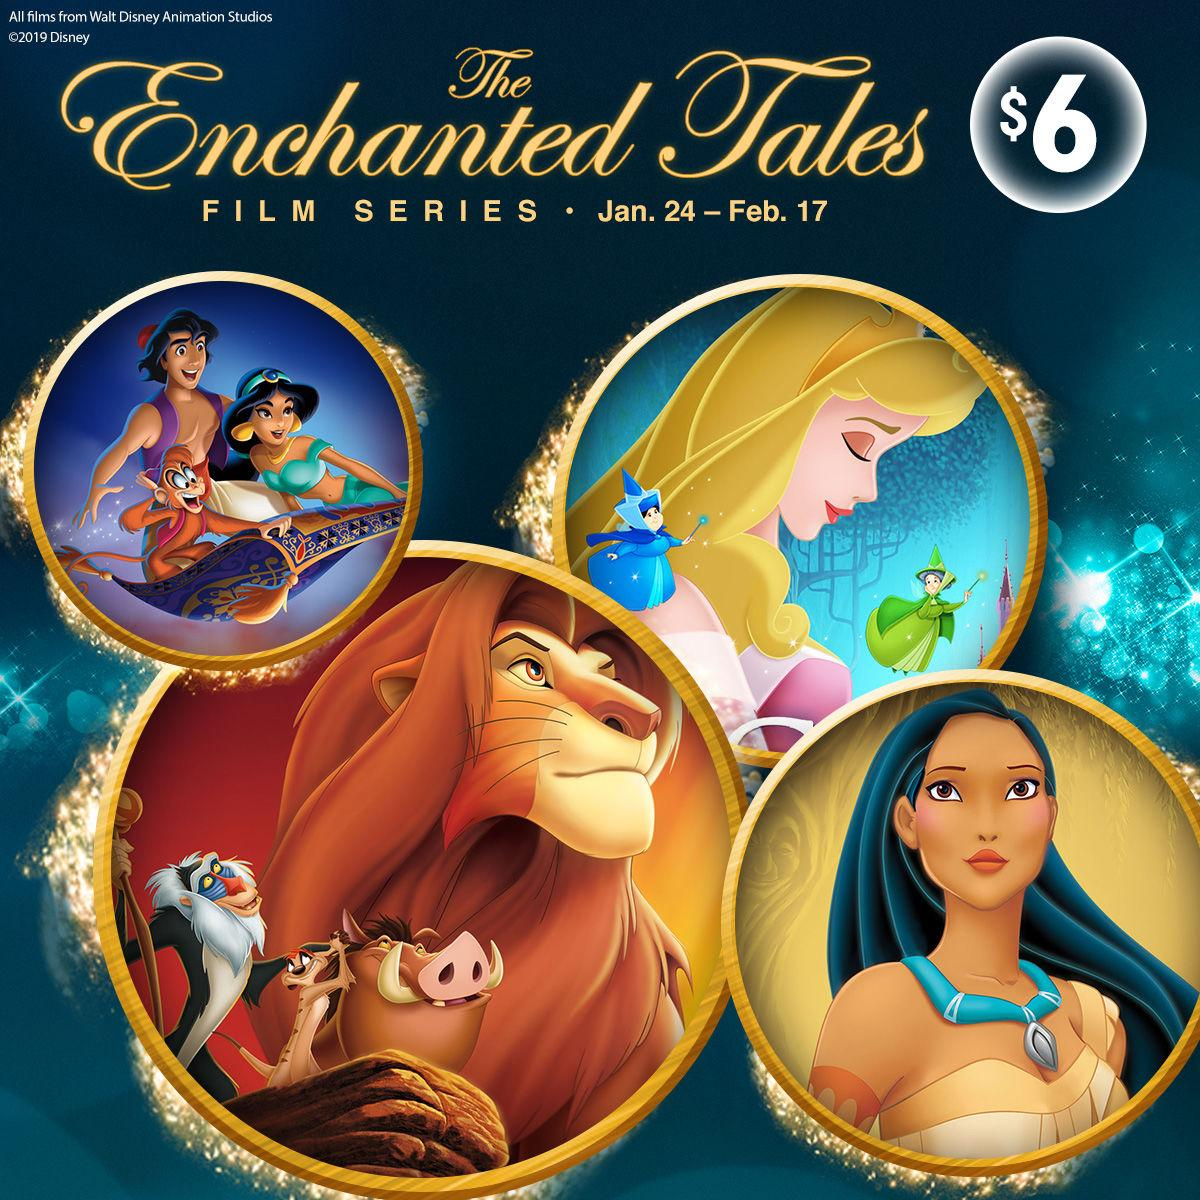 See Disney classics for just $6 at Marcus Theatres!